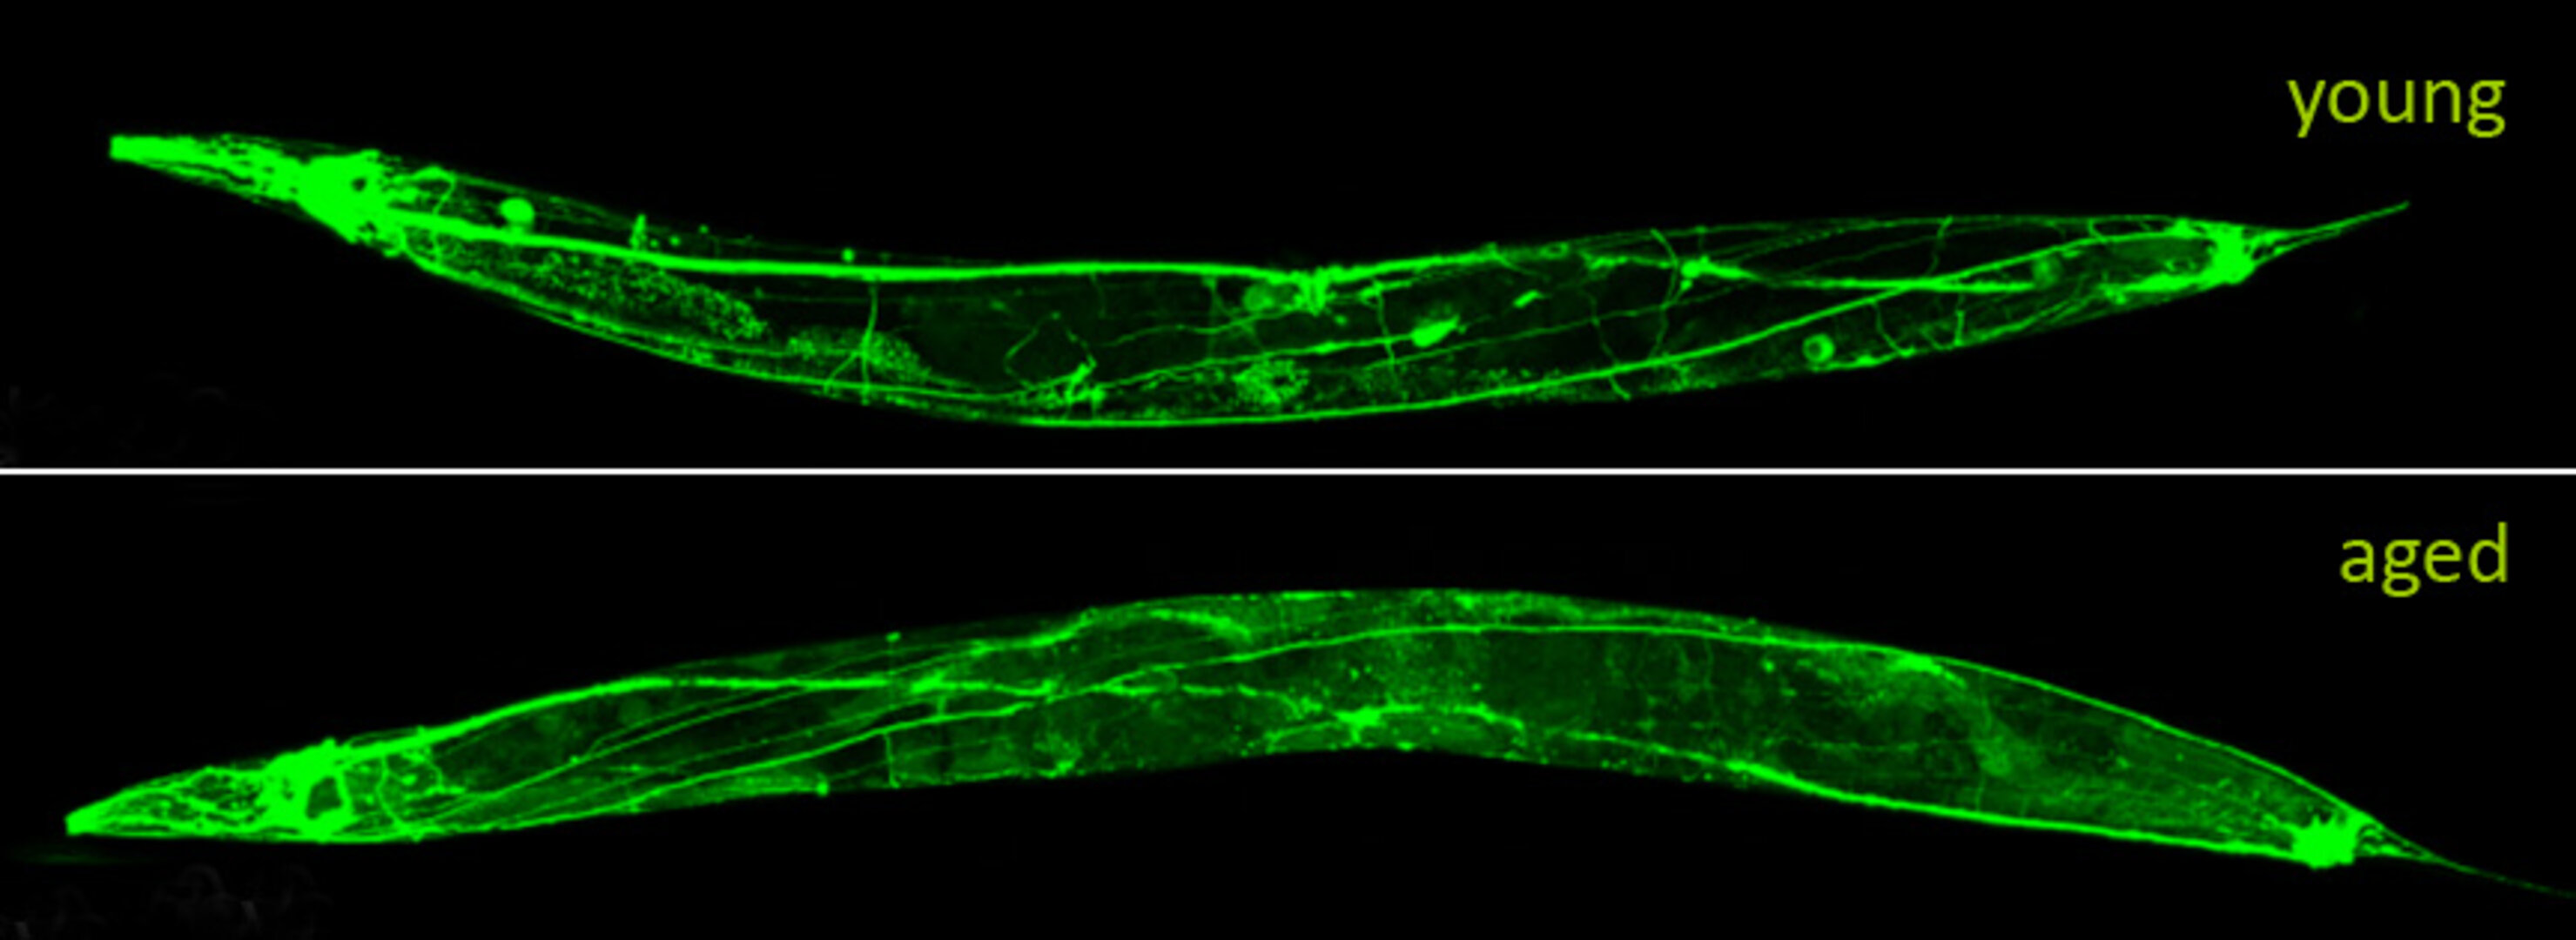 Neuronal deterioration of worm during ageing